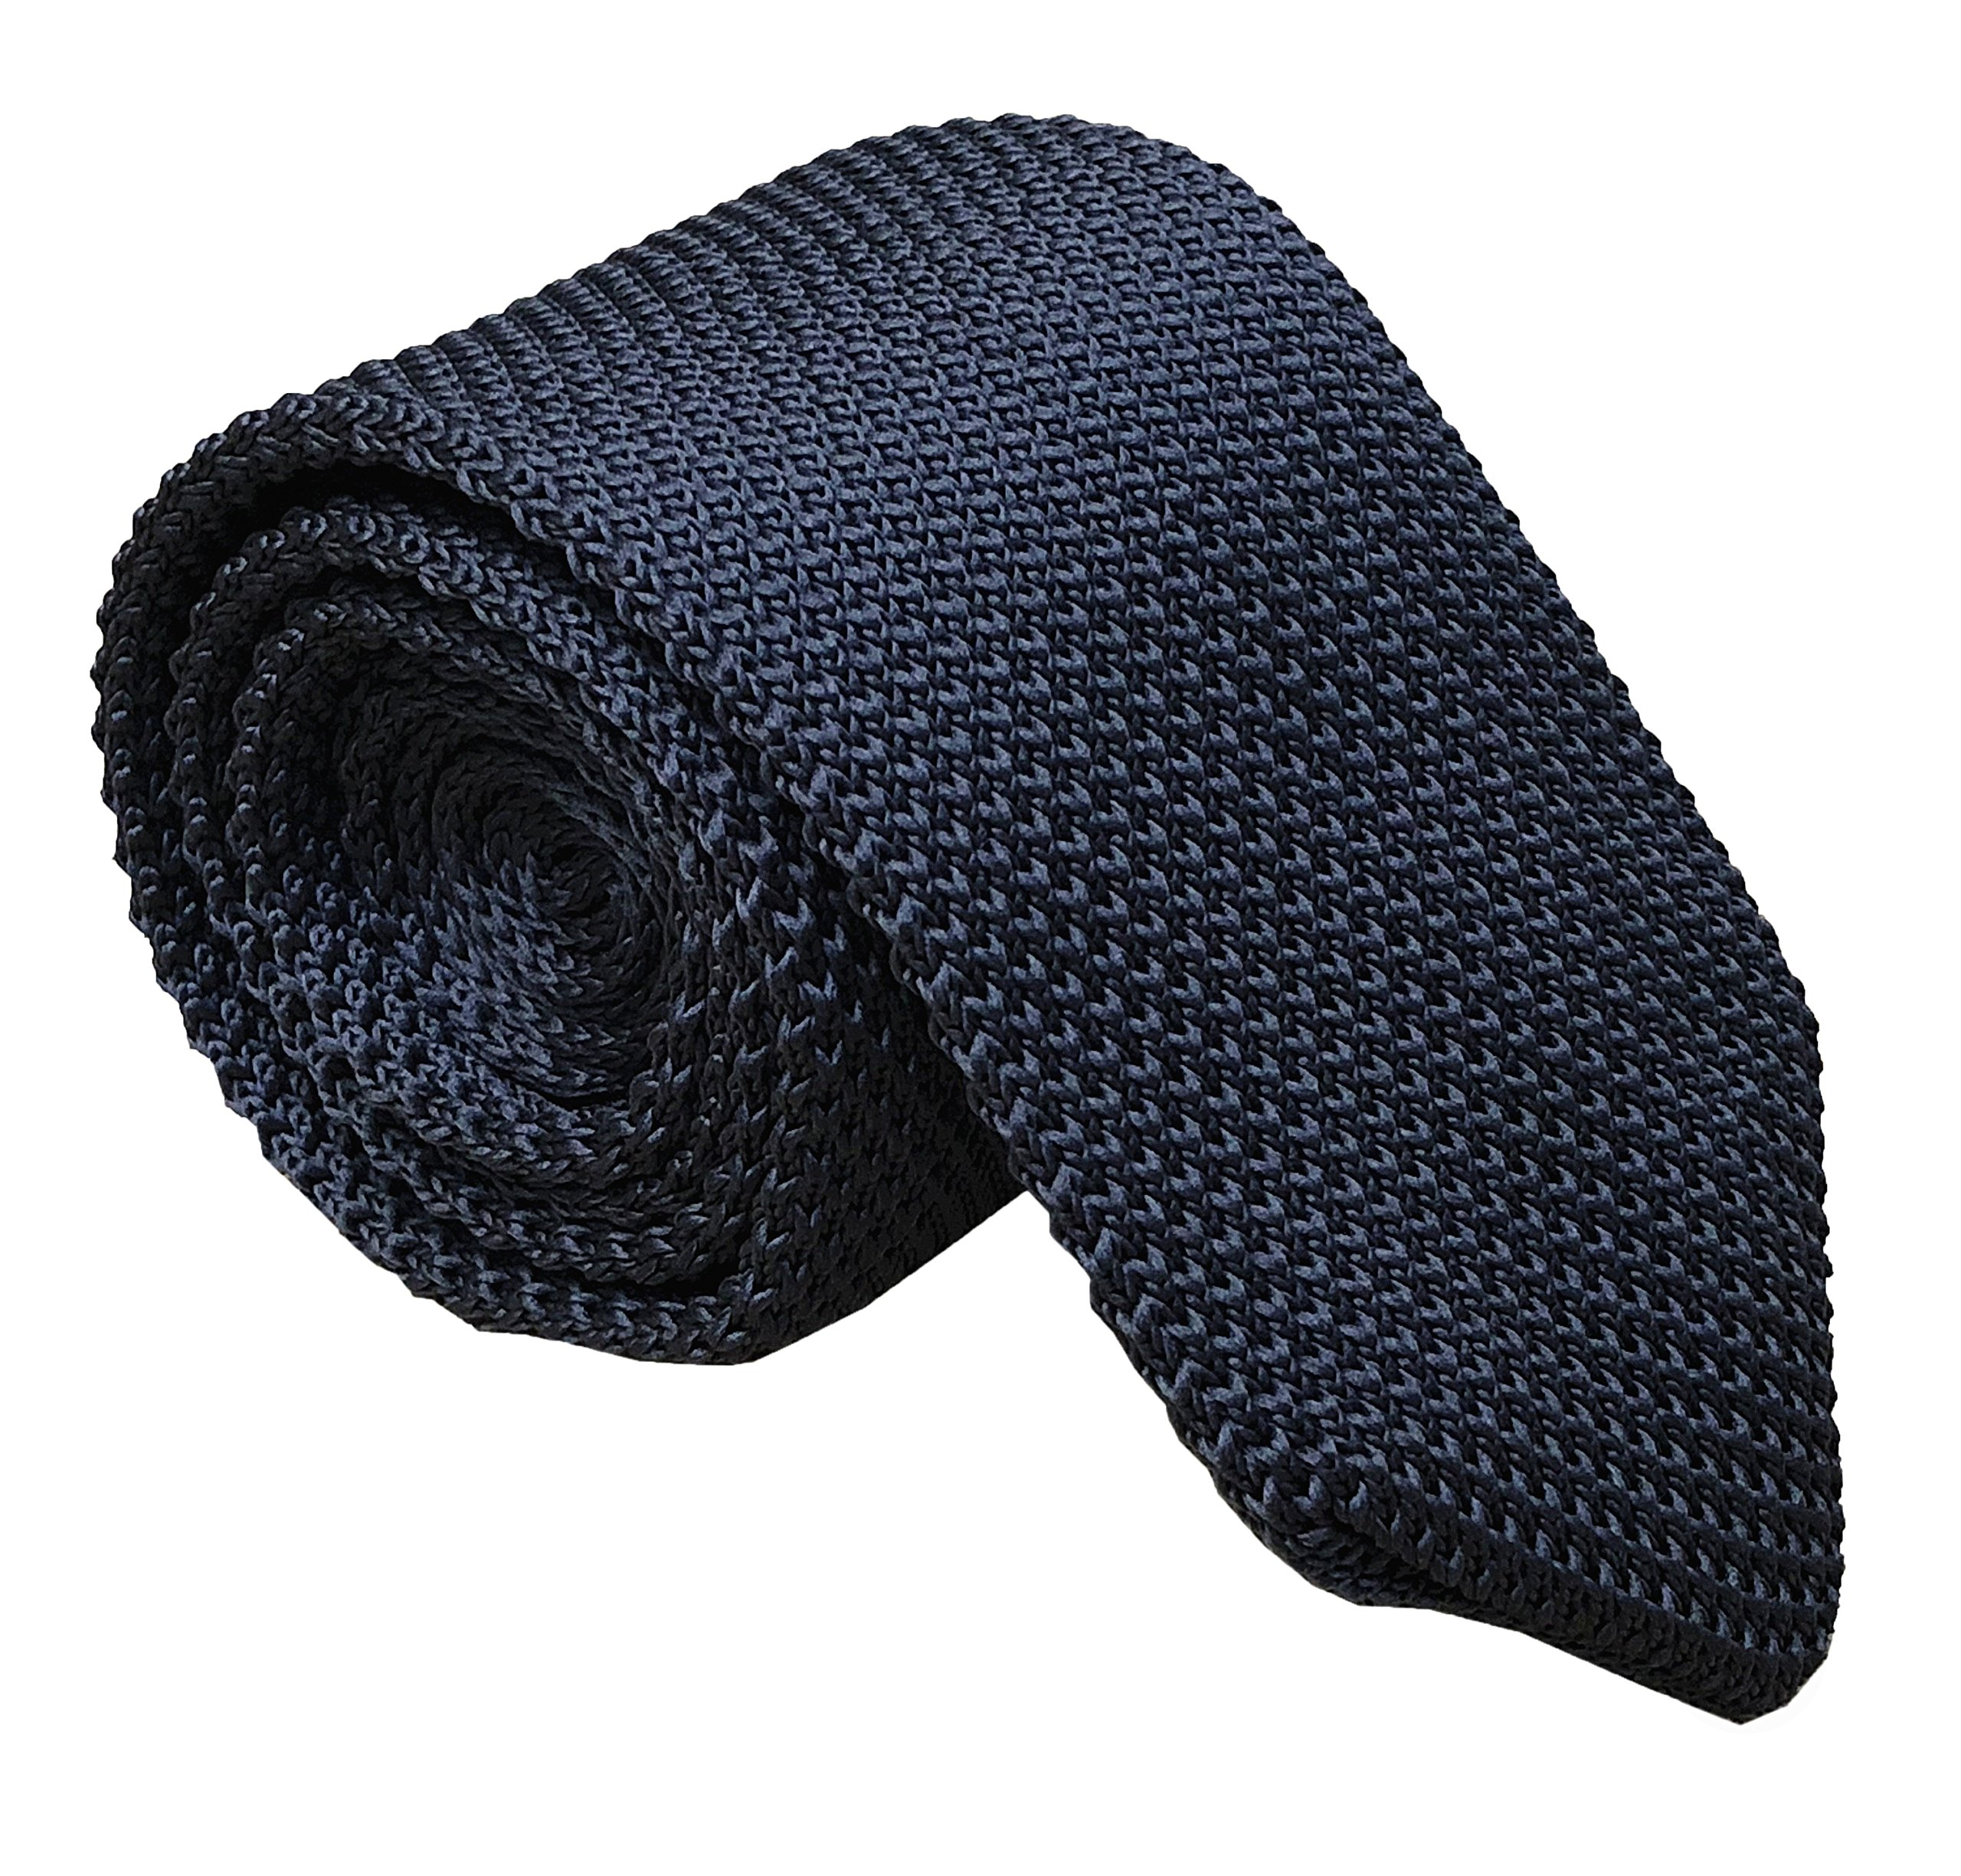 Mens Classic Dark Grey Knit Ties Vintage Woven Casual Stylish Necktie for Gift